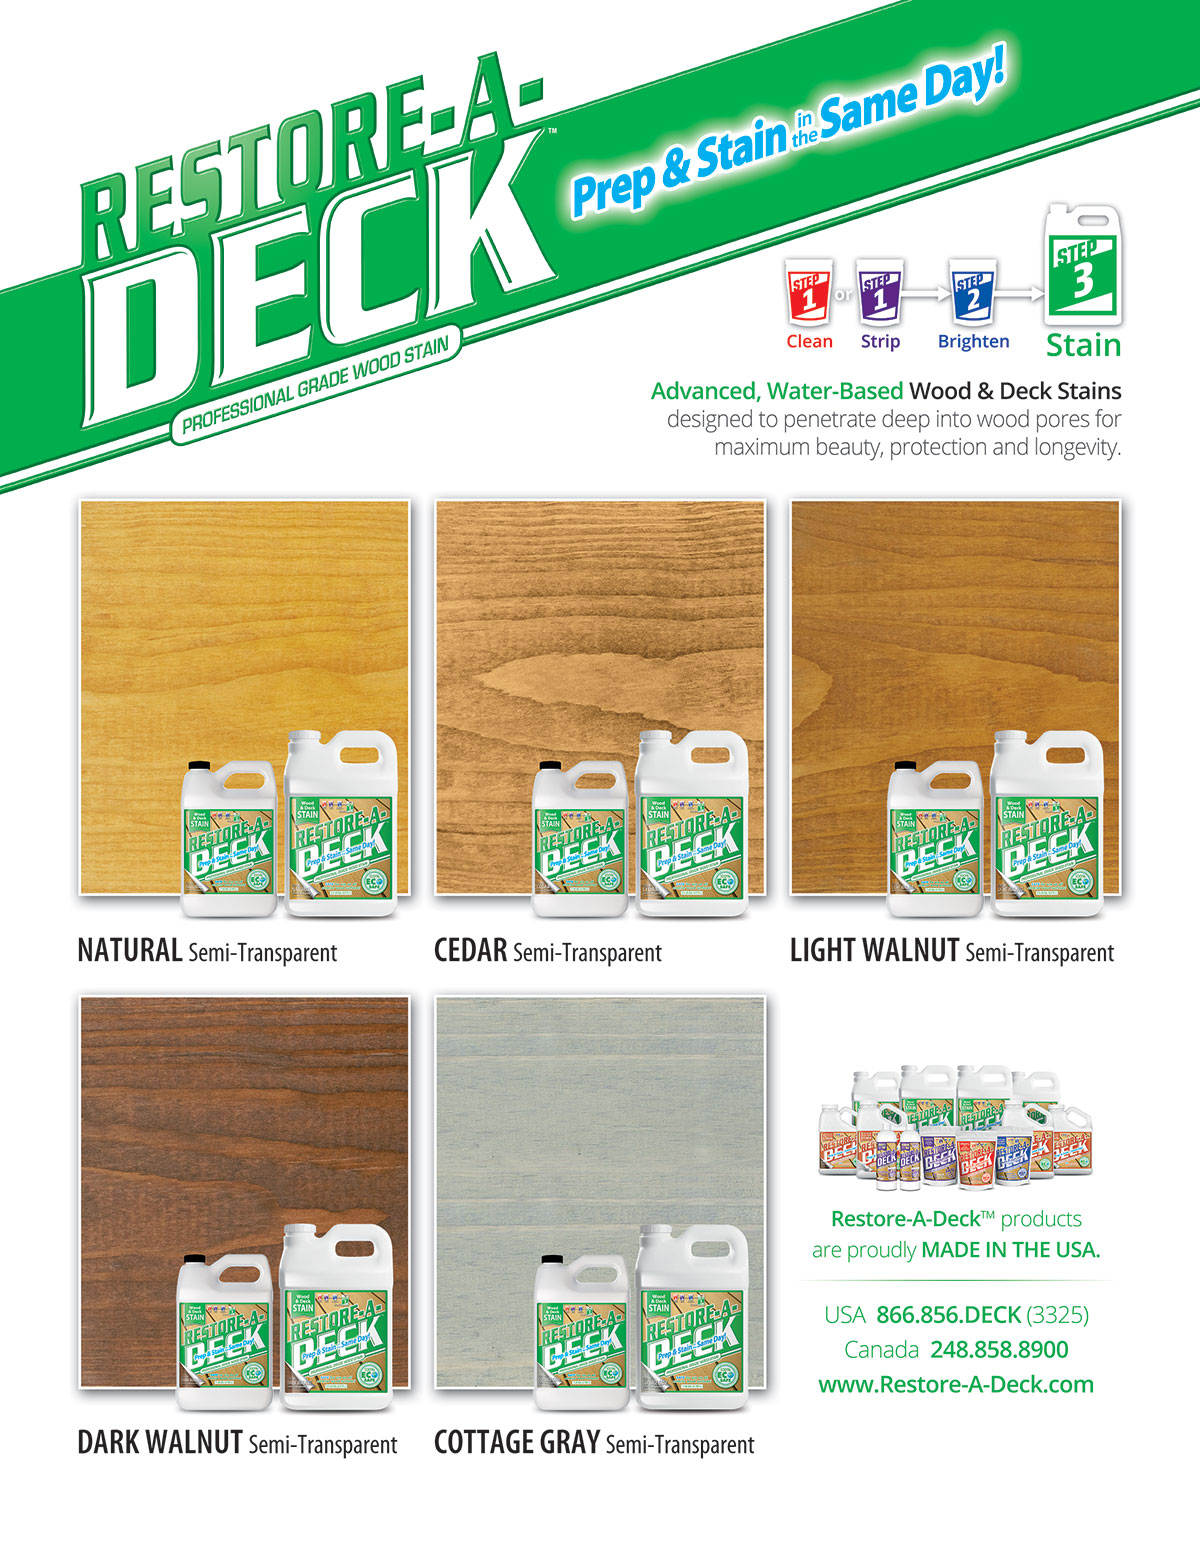 Restore-A-Deck Wood Stain Samples